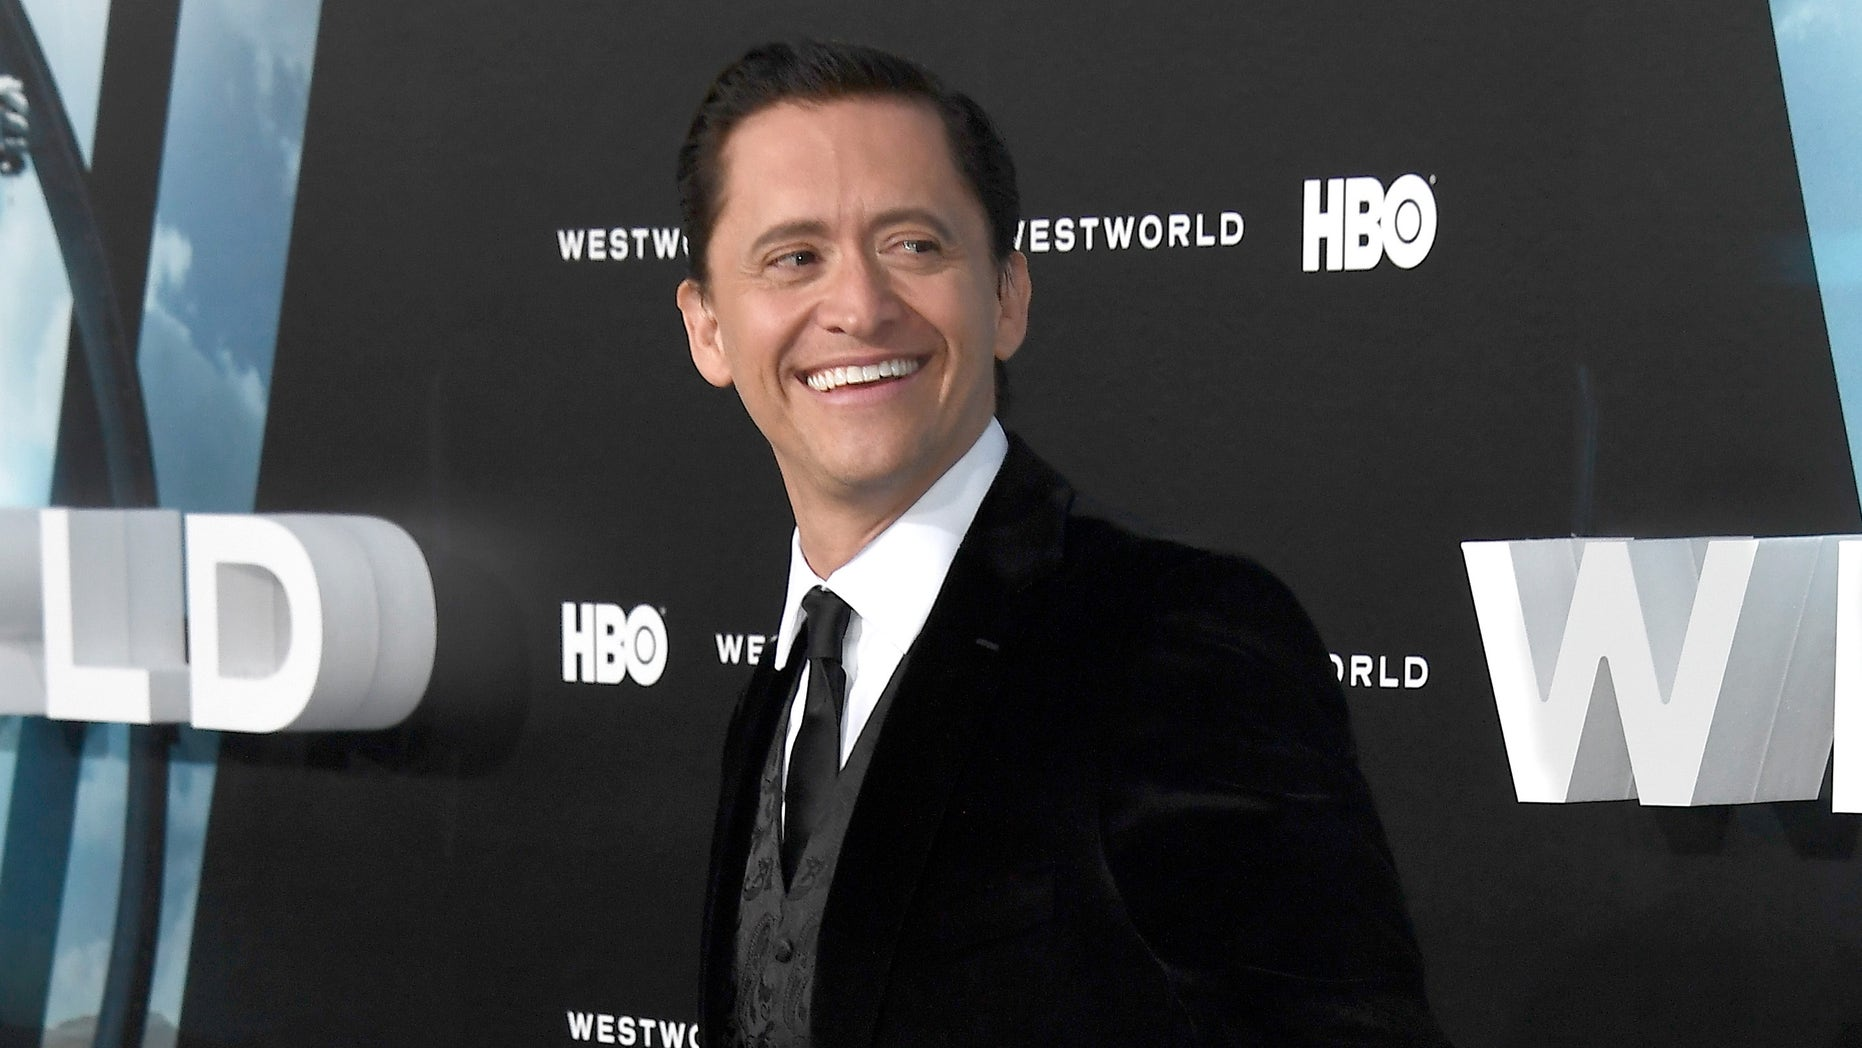 """HOLLYWOOD, CA - SEPTEMBER 28:  Actor Clifton Collins Jr. attends the premiere of HBO's """"Westworld"""" at TCL Chinese Theatre on September 28, 2016 in Hollywood, California.  (Photo by Frazer Harrison/Getty Images)"""